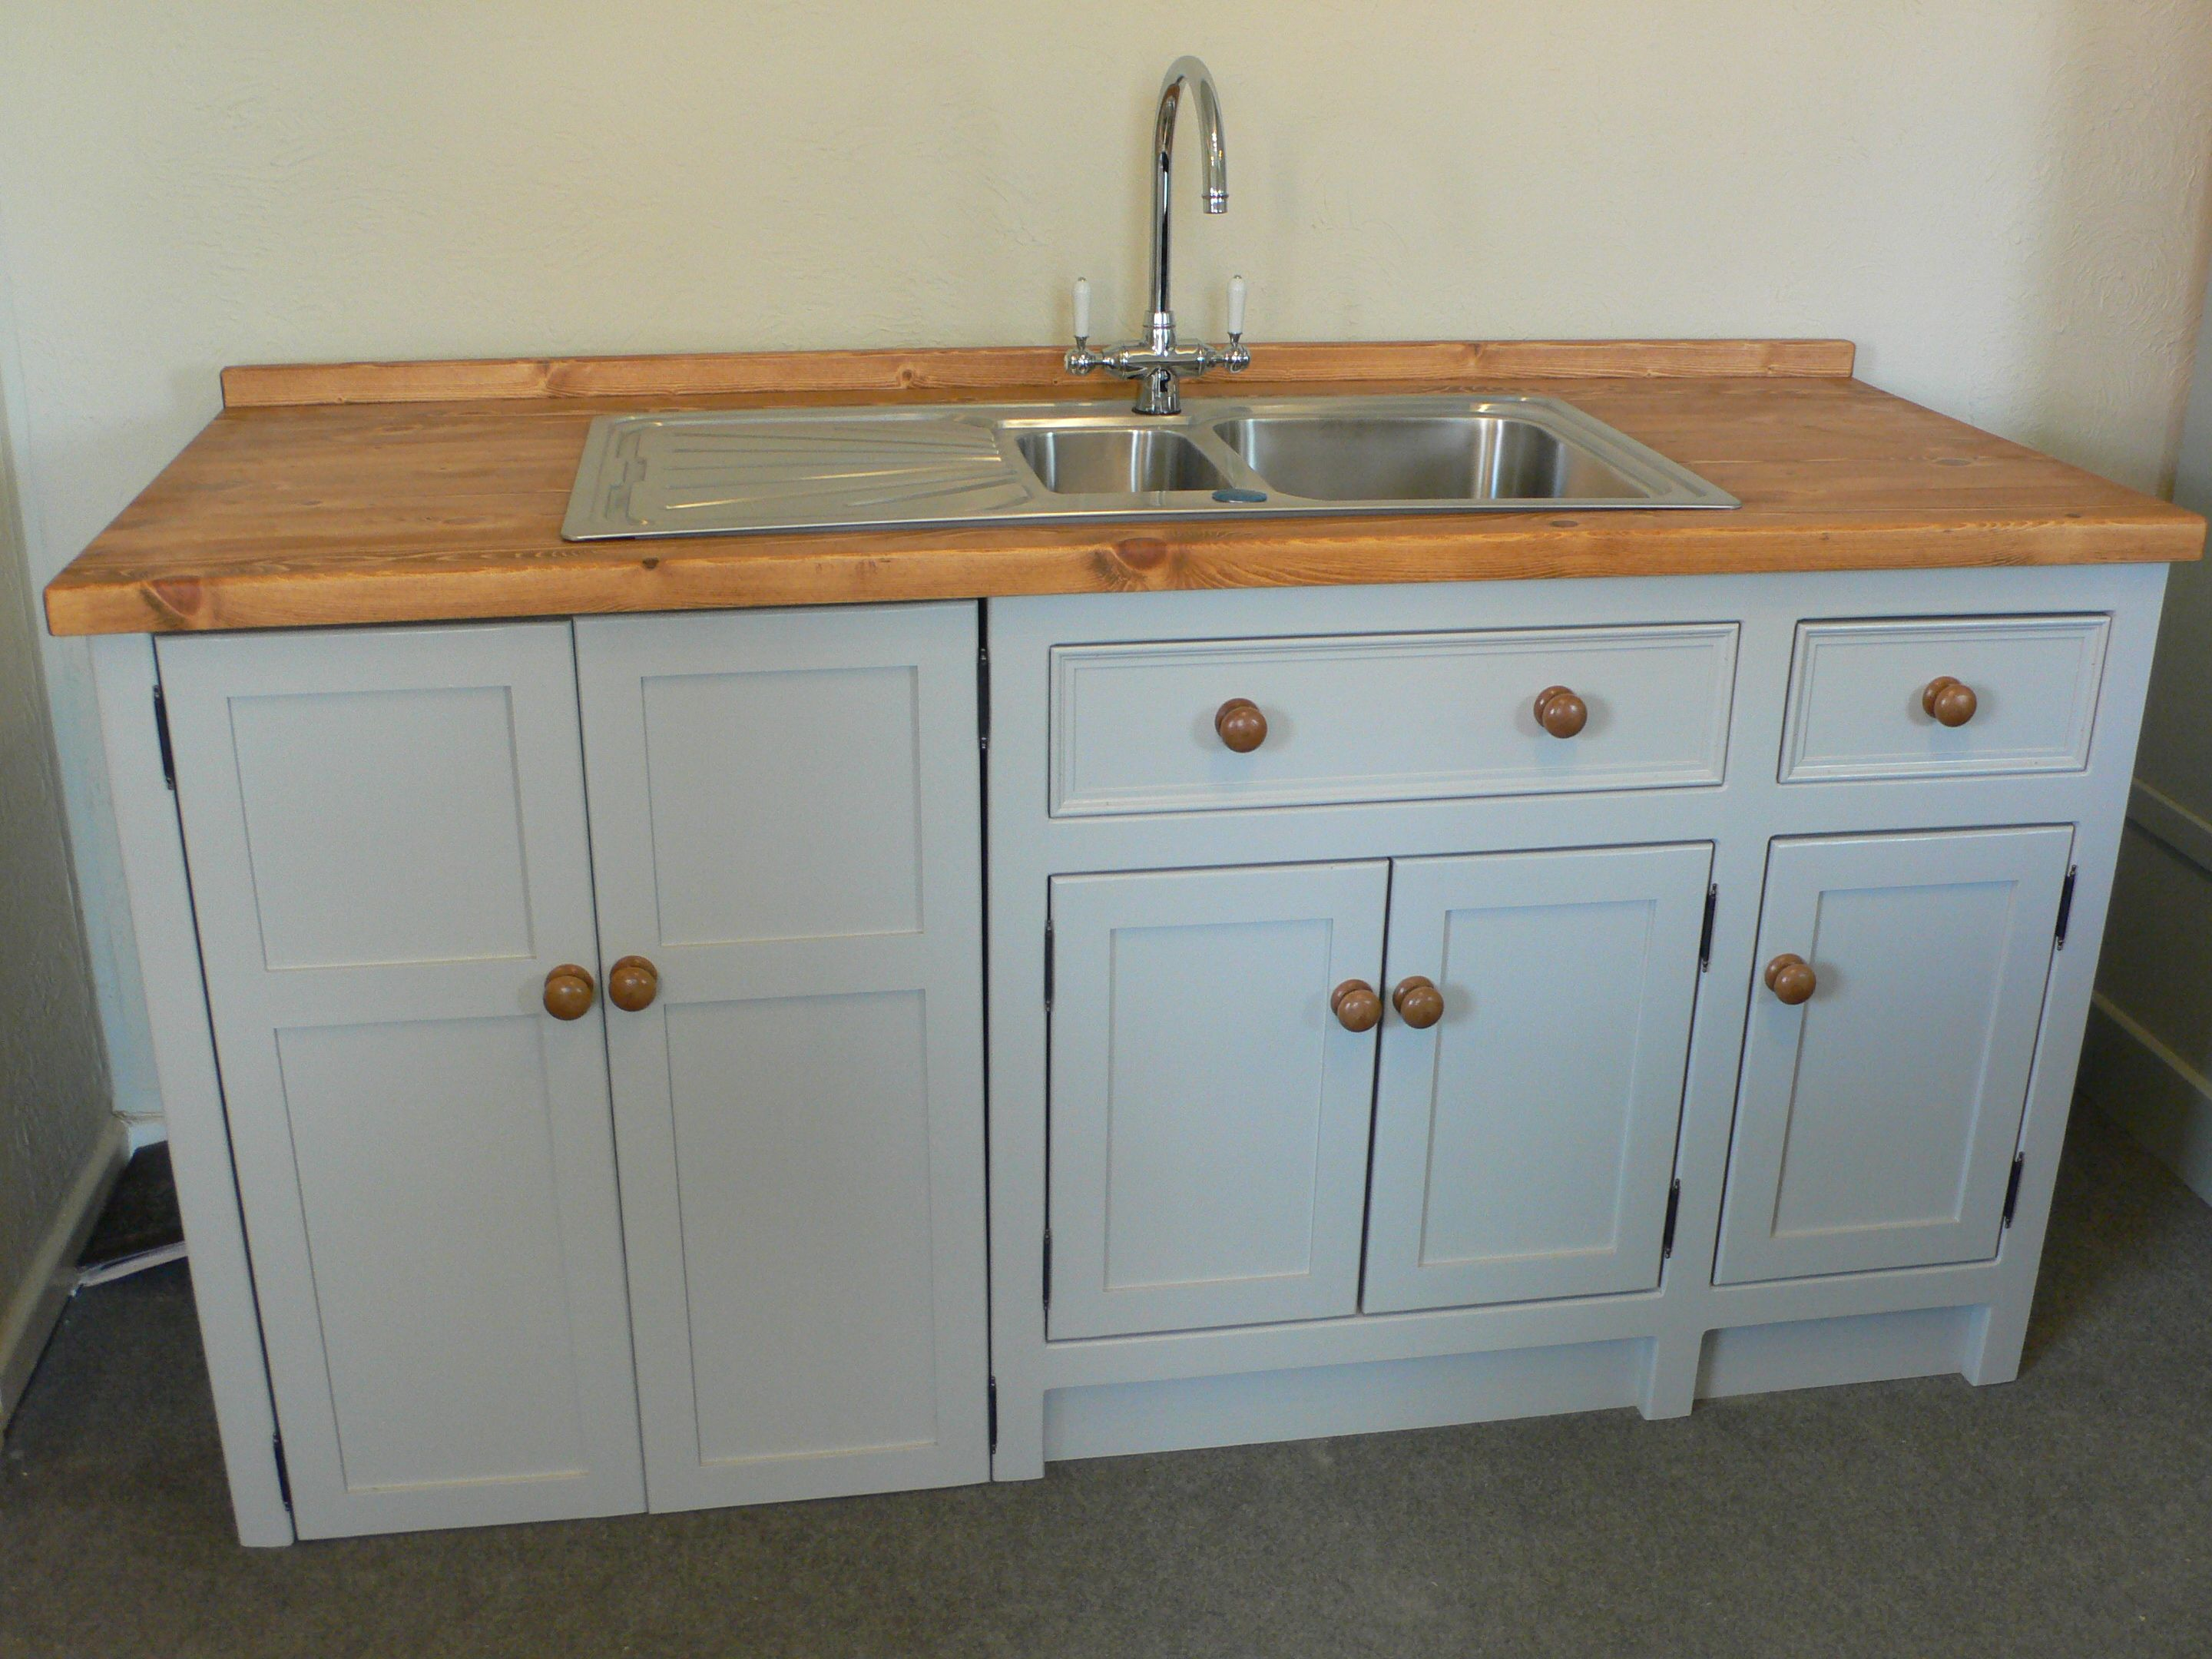 A Practical And Great Looking Freestanding Sink Unit For A Utility Room Painted Free Standing Kitchen Units Freestanding Kitchen Free Standing Kitchen Cabinets